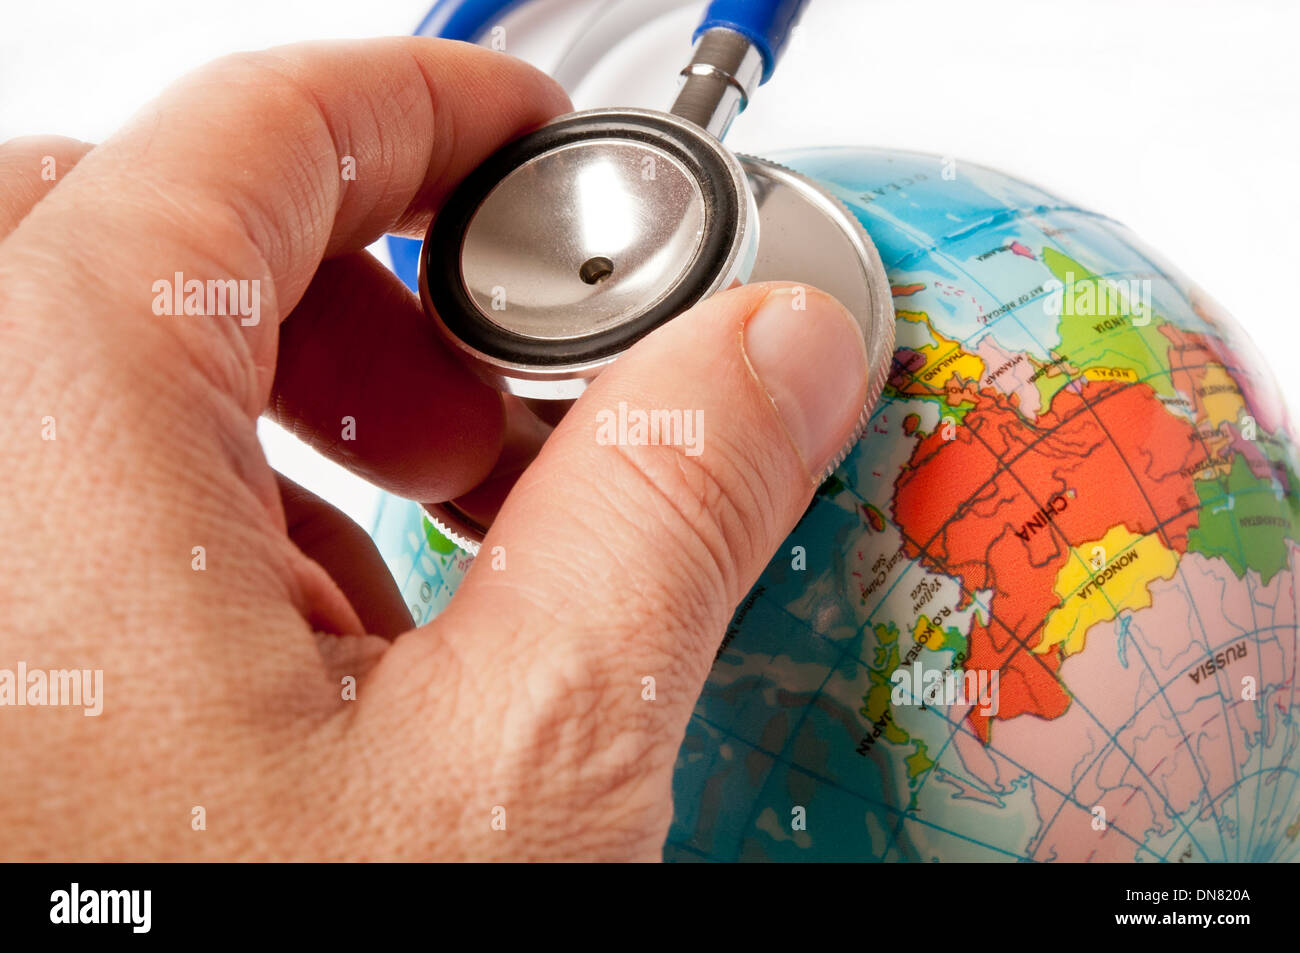 healing the planet earth - Stock Image